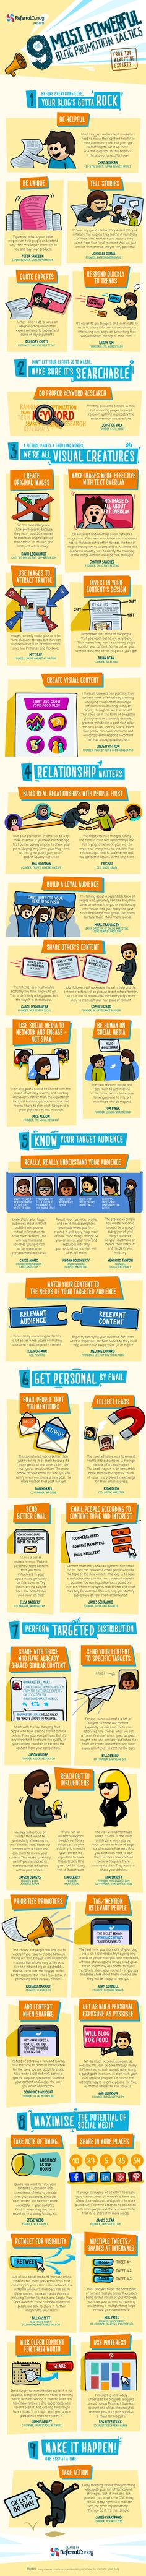 How to promote your blog - #Marketing #infographic #blogging #socialmedia